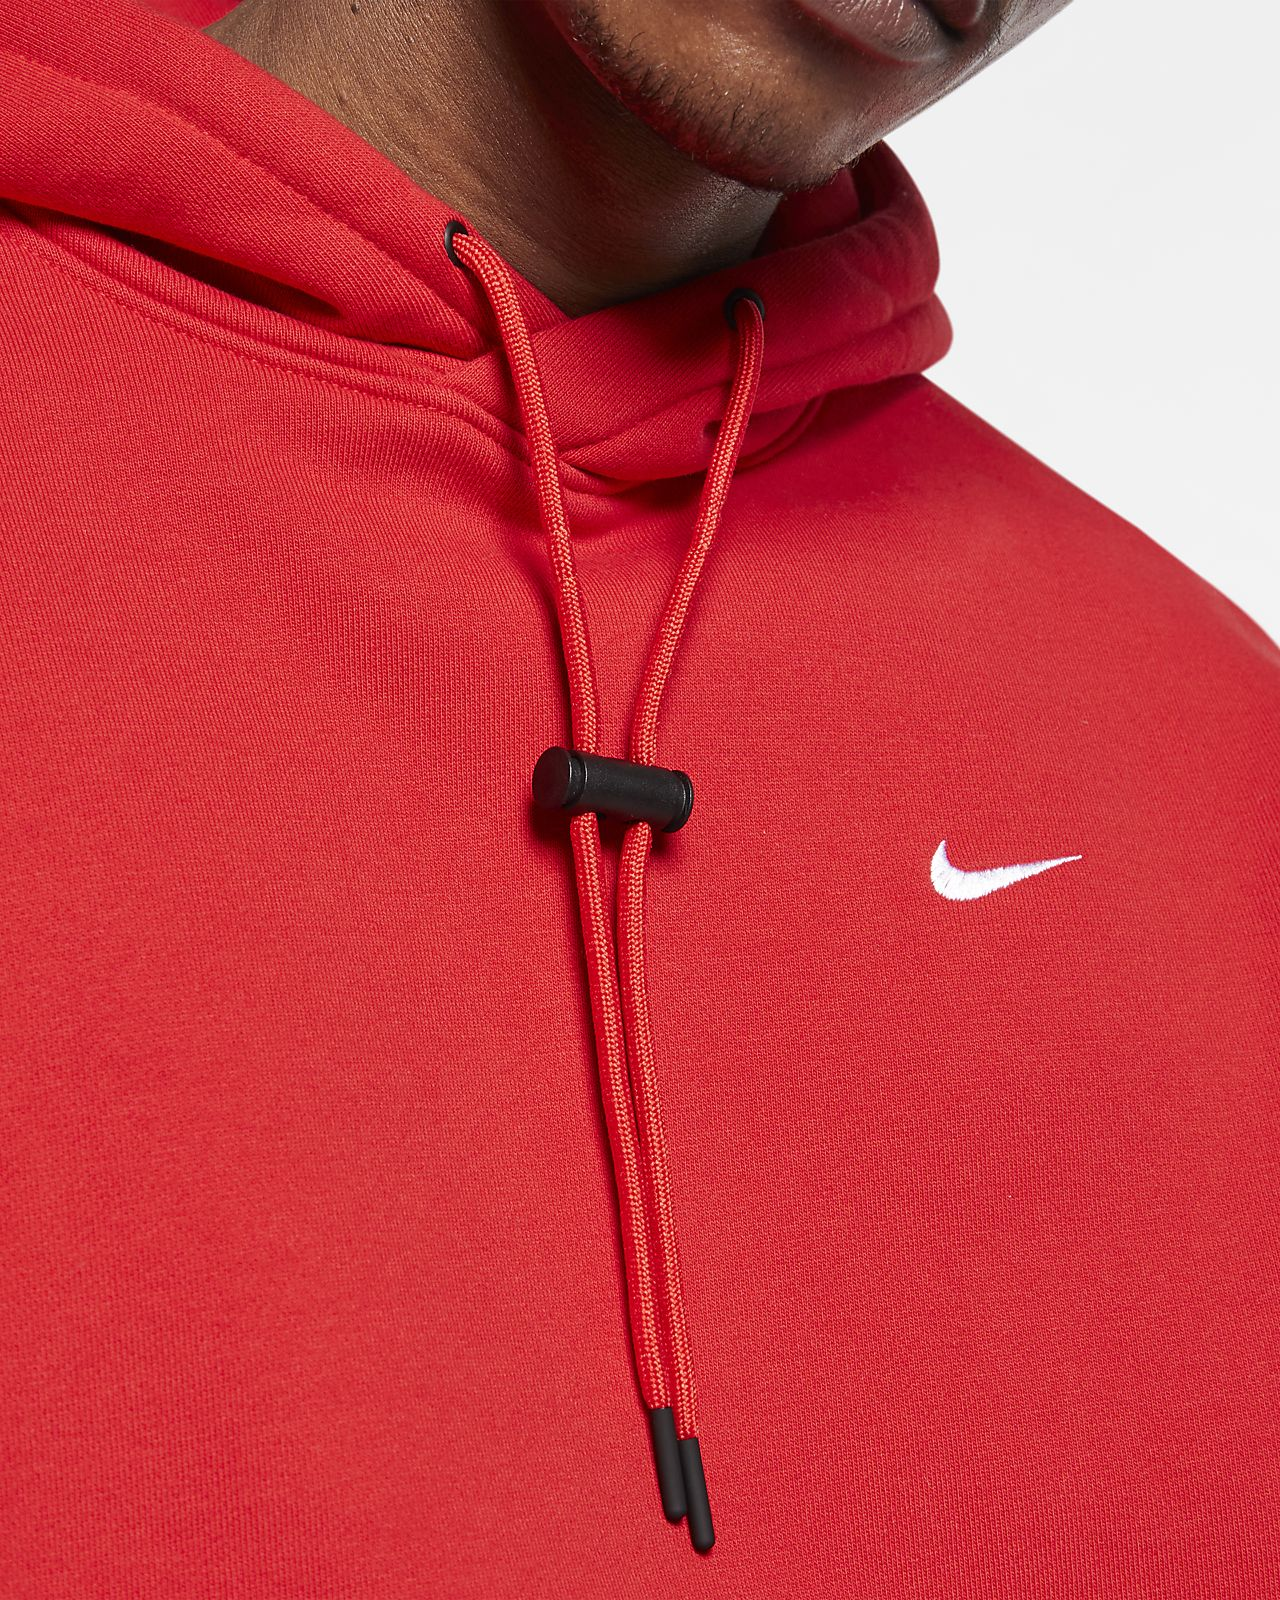 low priced efa29 51d8f NikeLab Collection Men's Pullover Hoodie